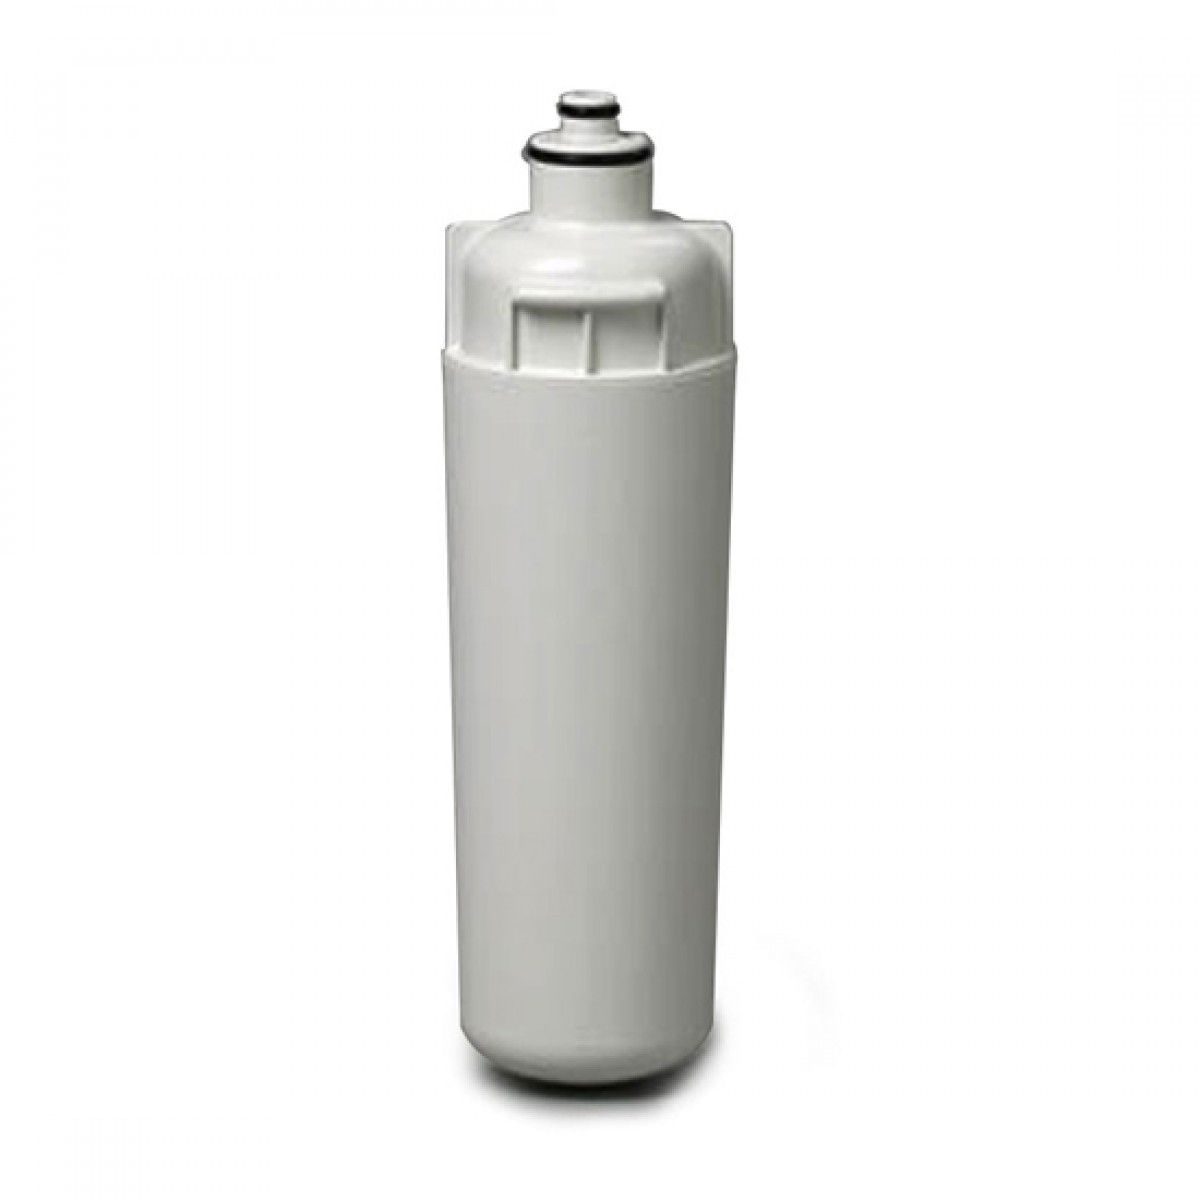 Cuno Cfs9720 Whole House Water Filter Replacement Cartridge